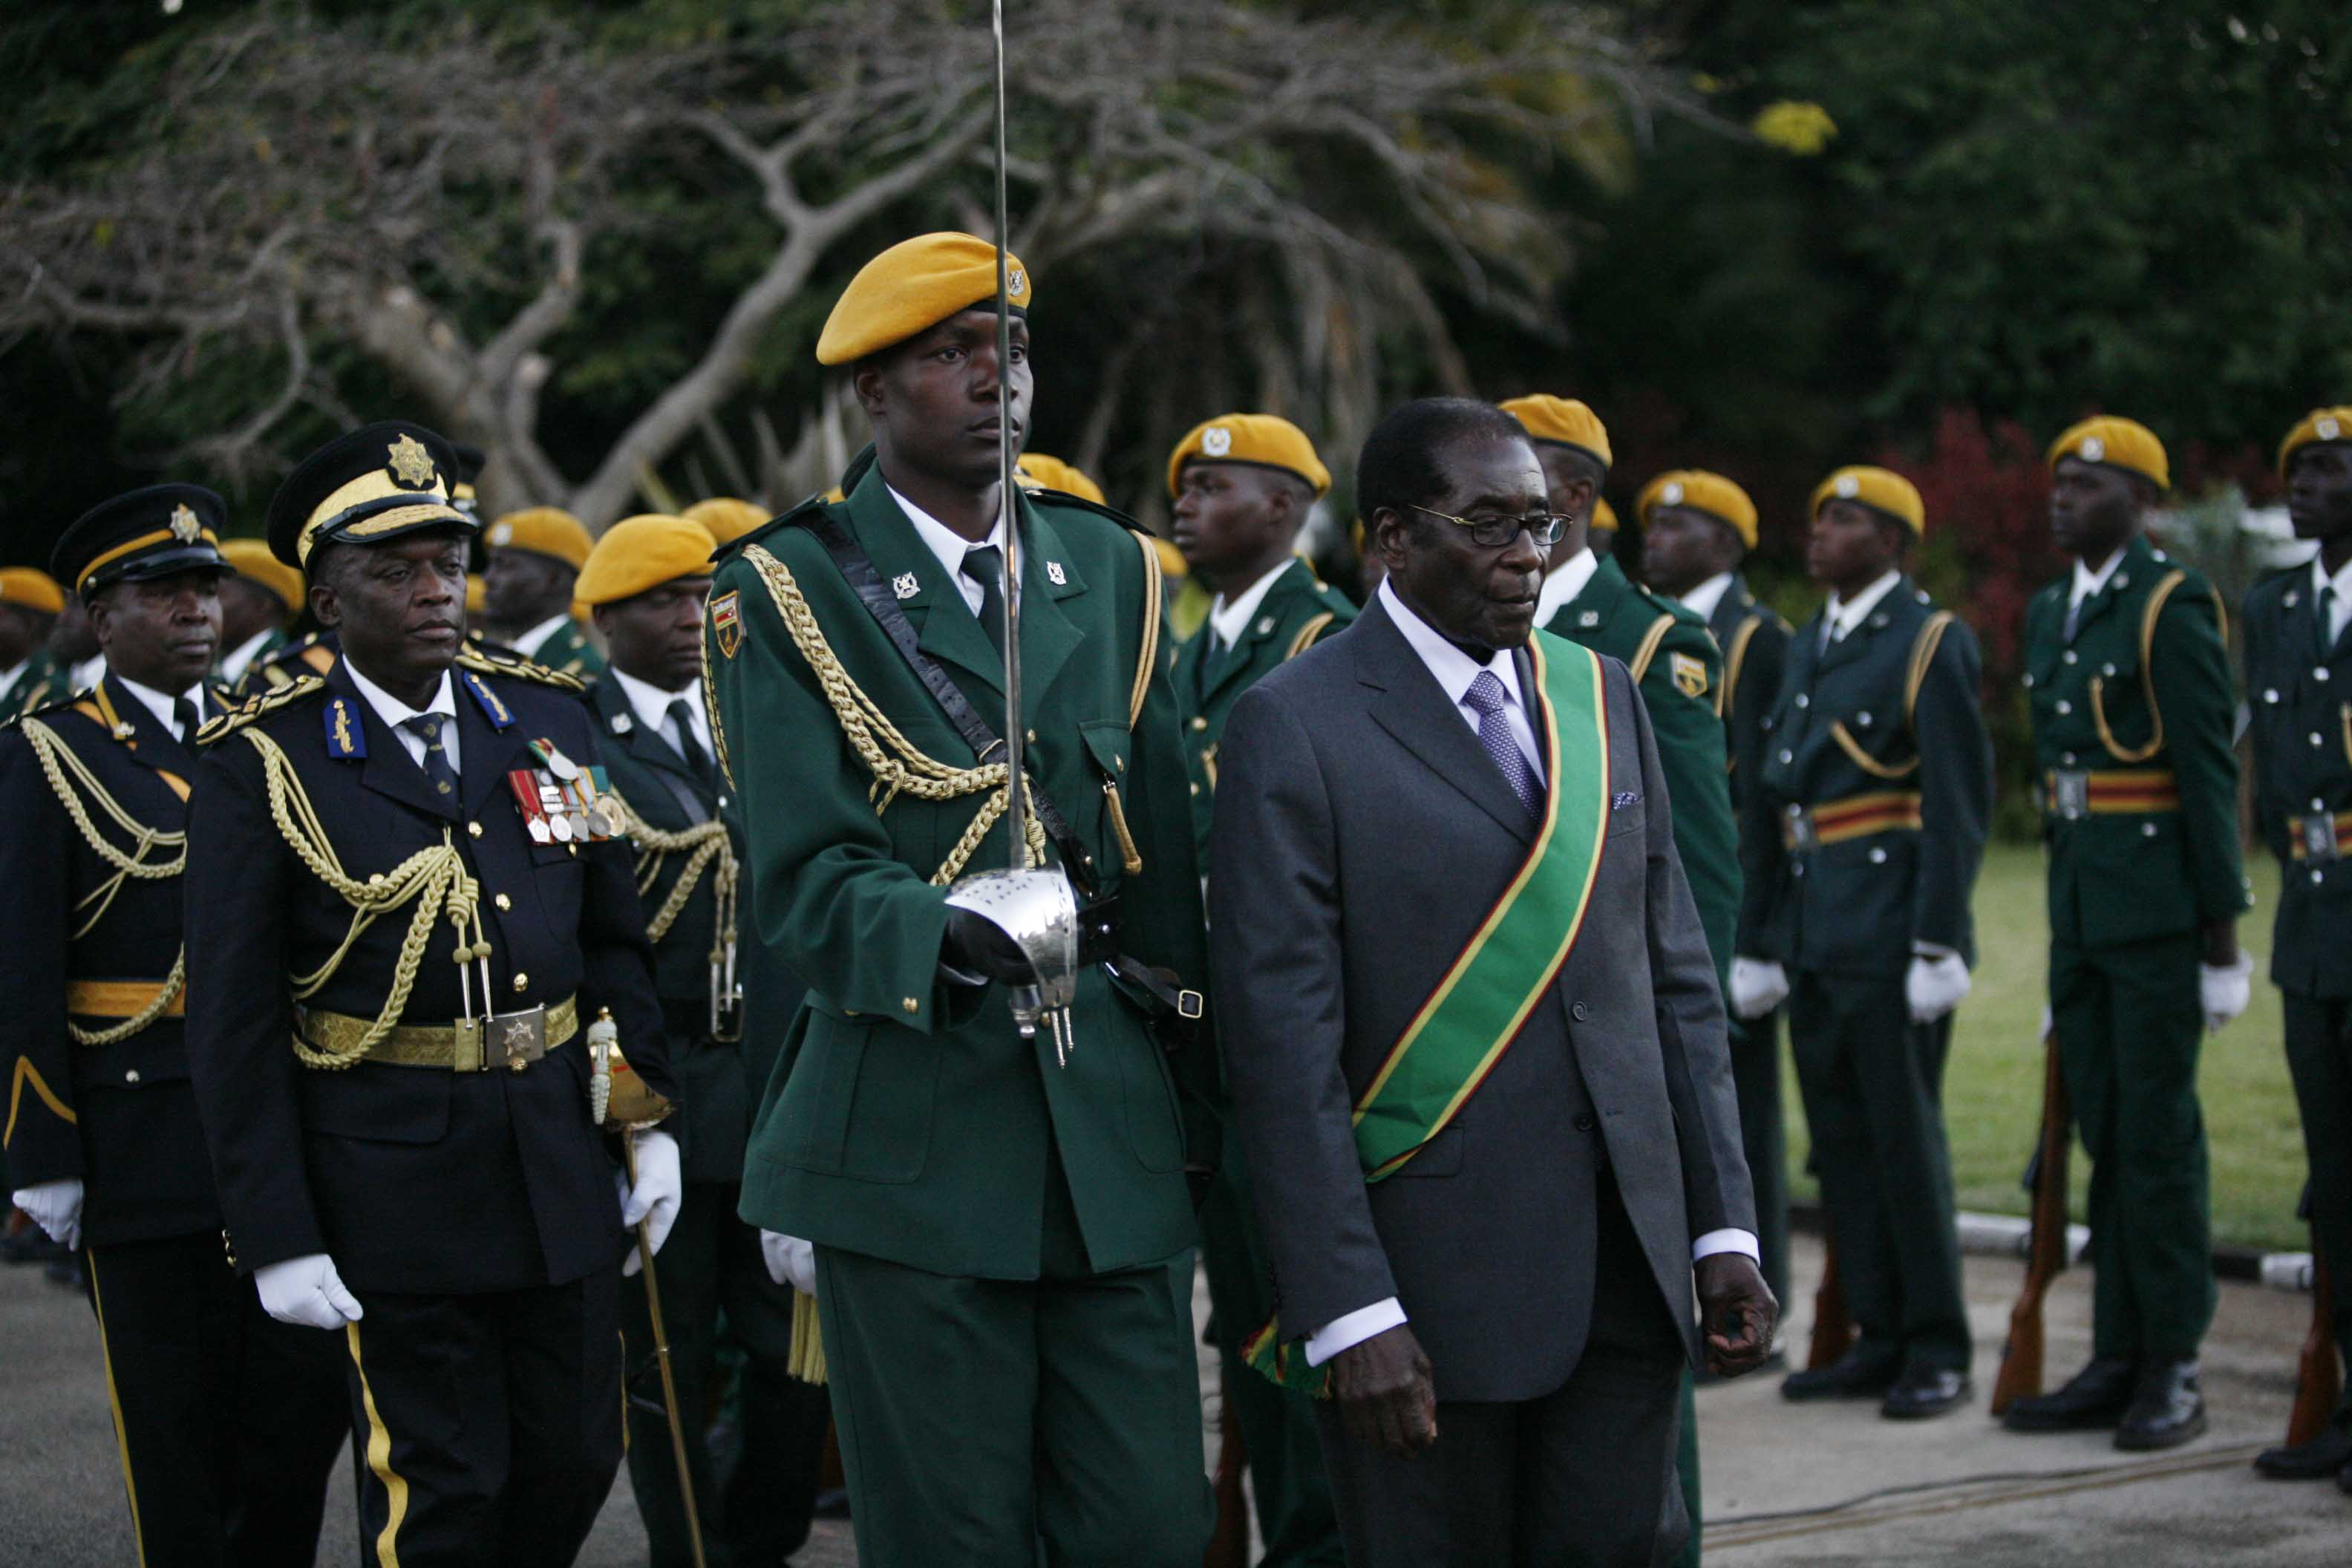 Robert Mugabe continues his unbroken rule.